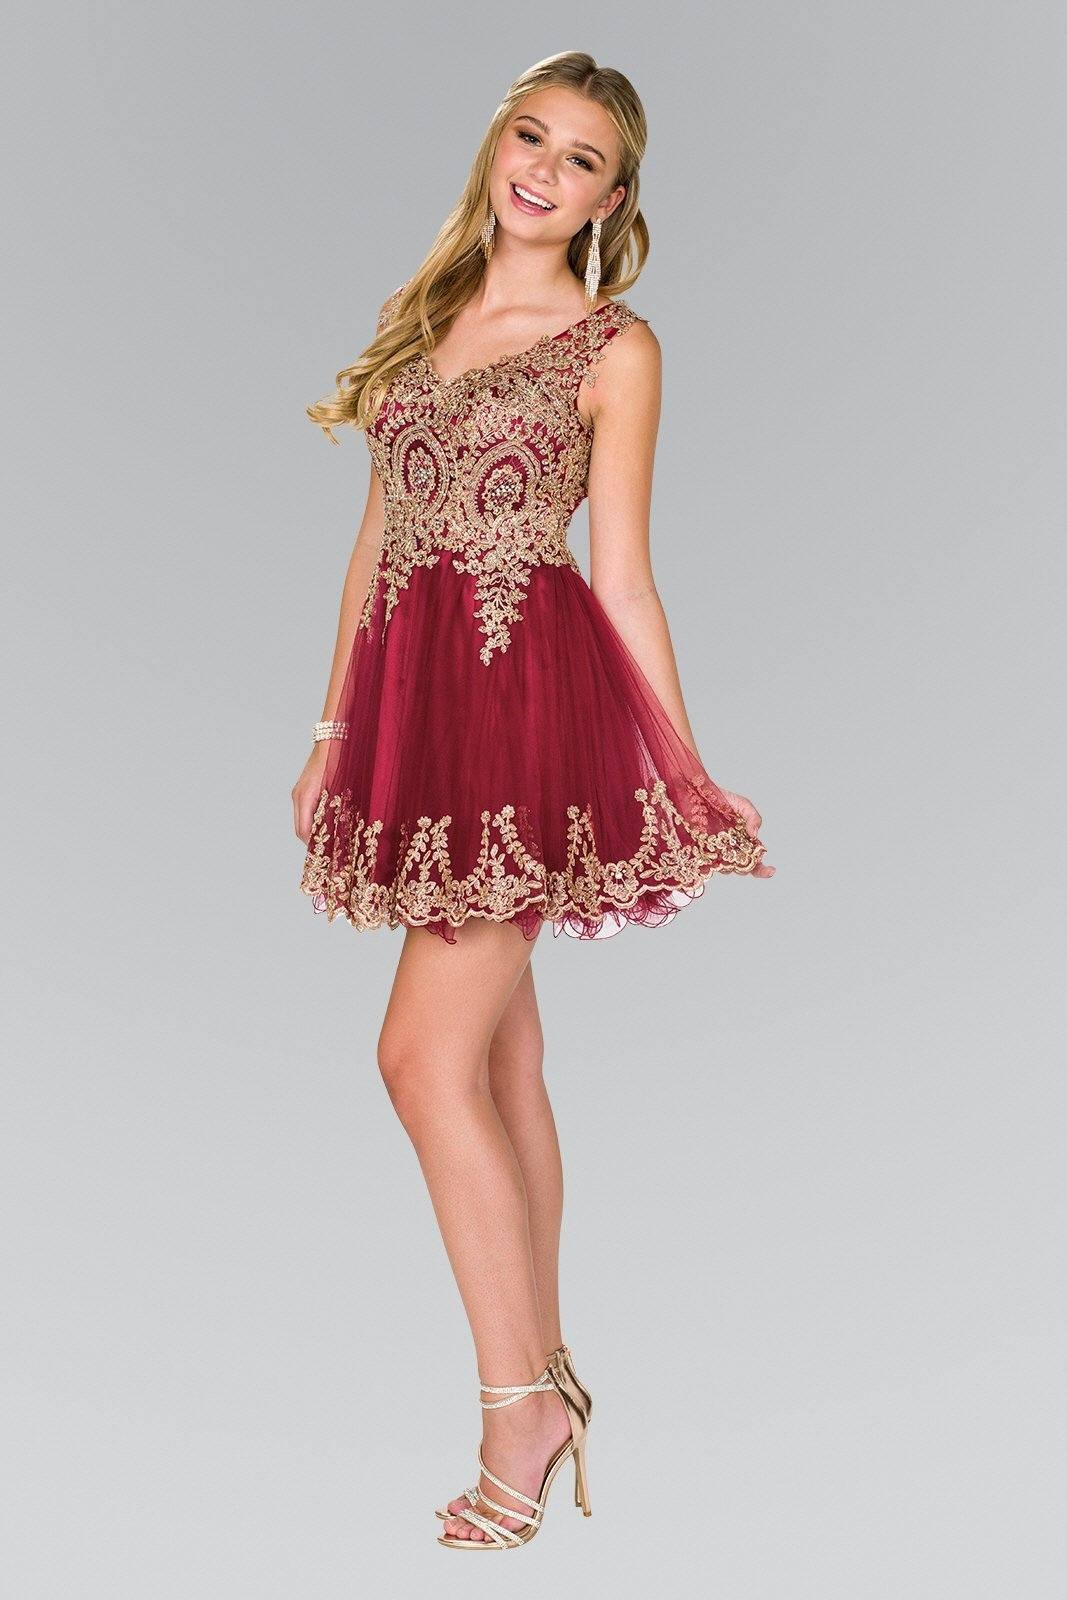 Burgundy gold bodice short homecoming dress  gls #gs2403 - Simply Fab Dress